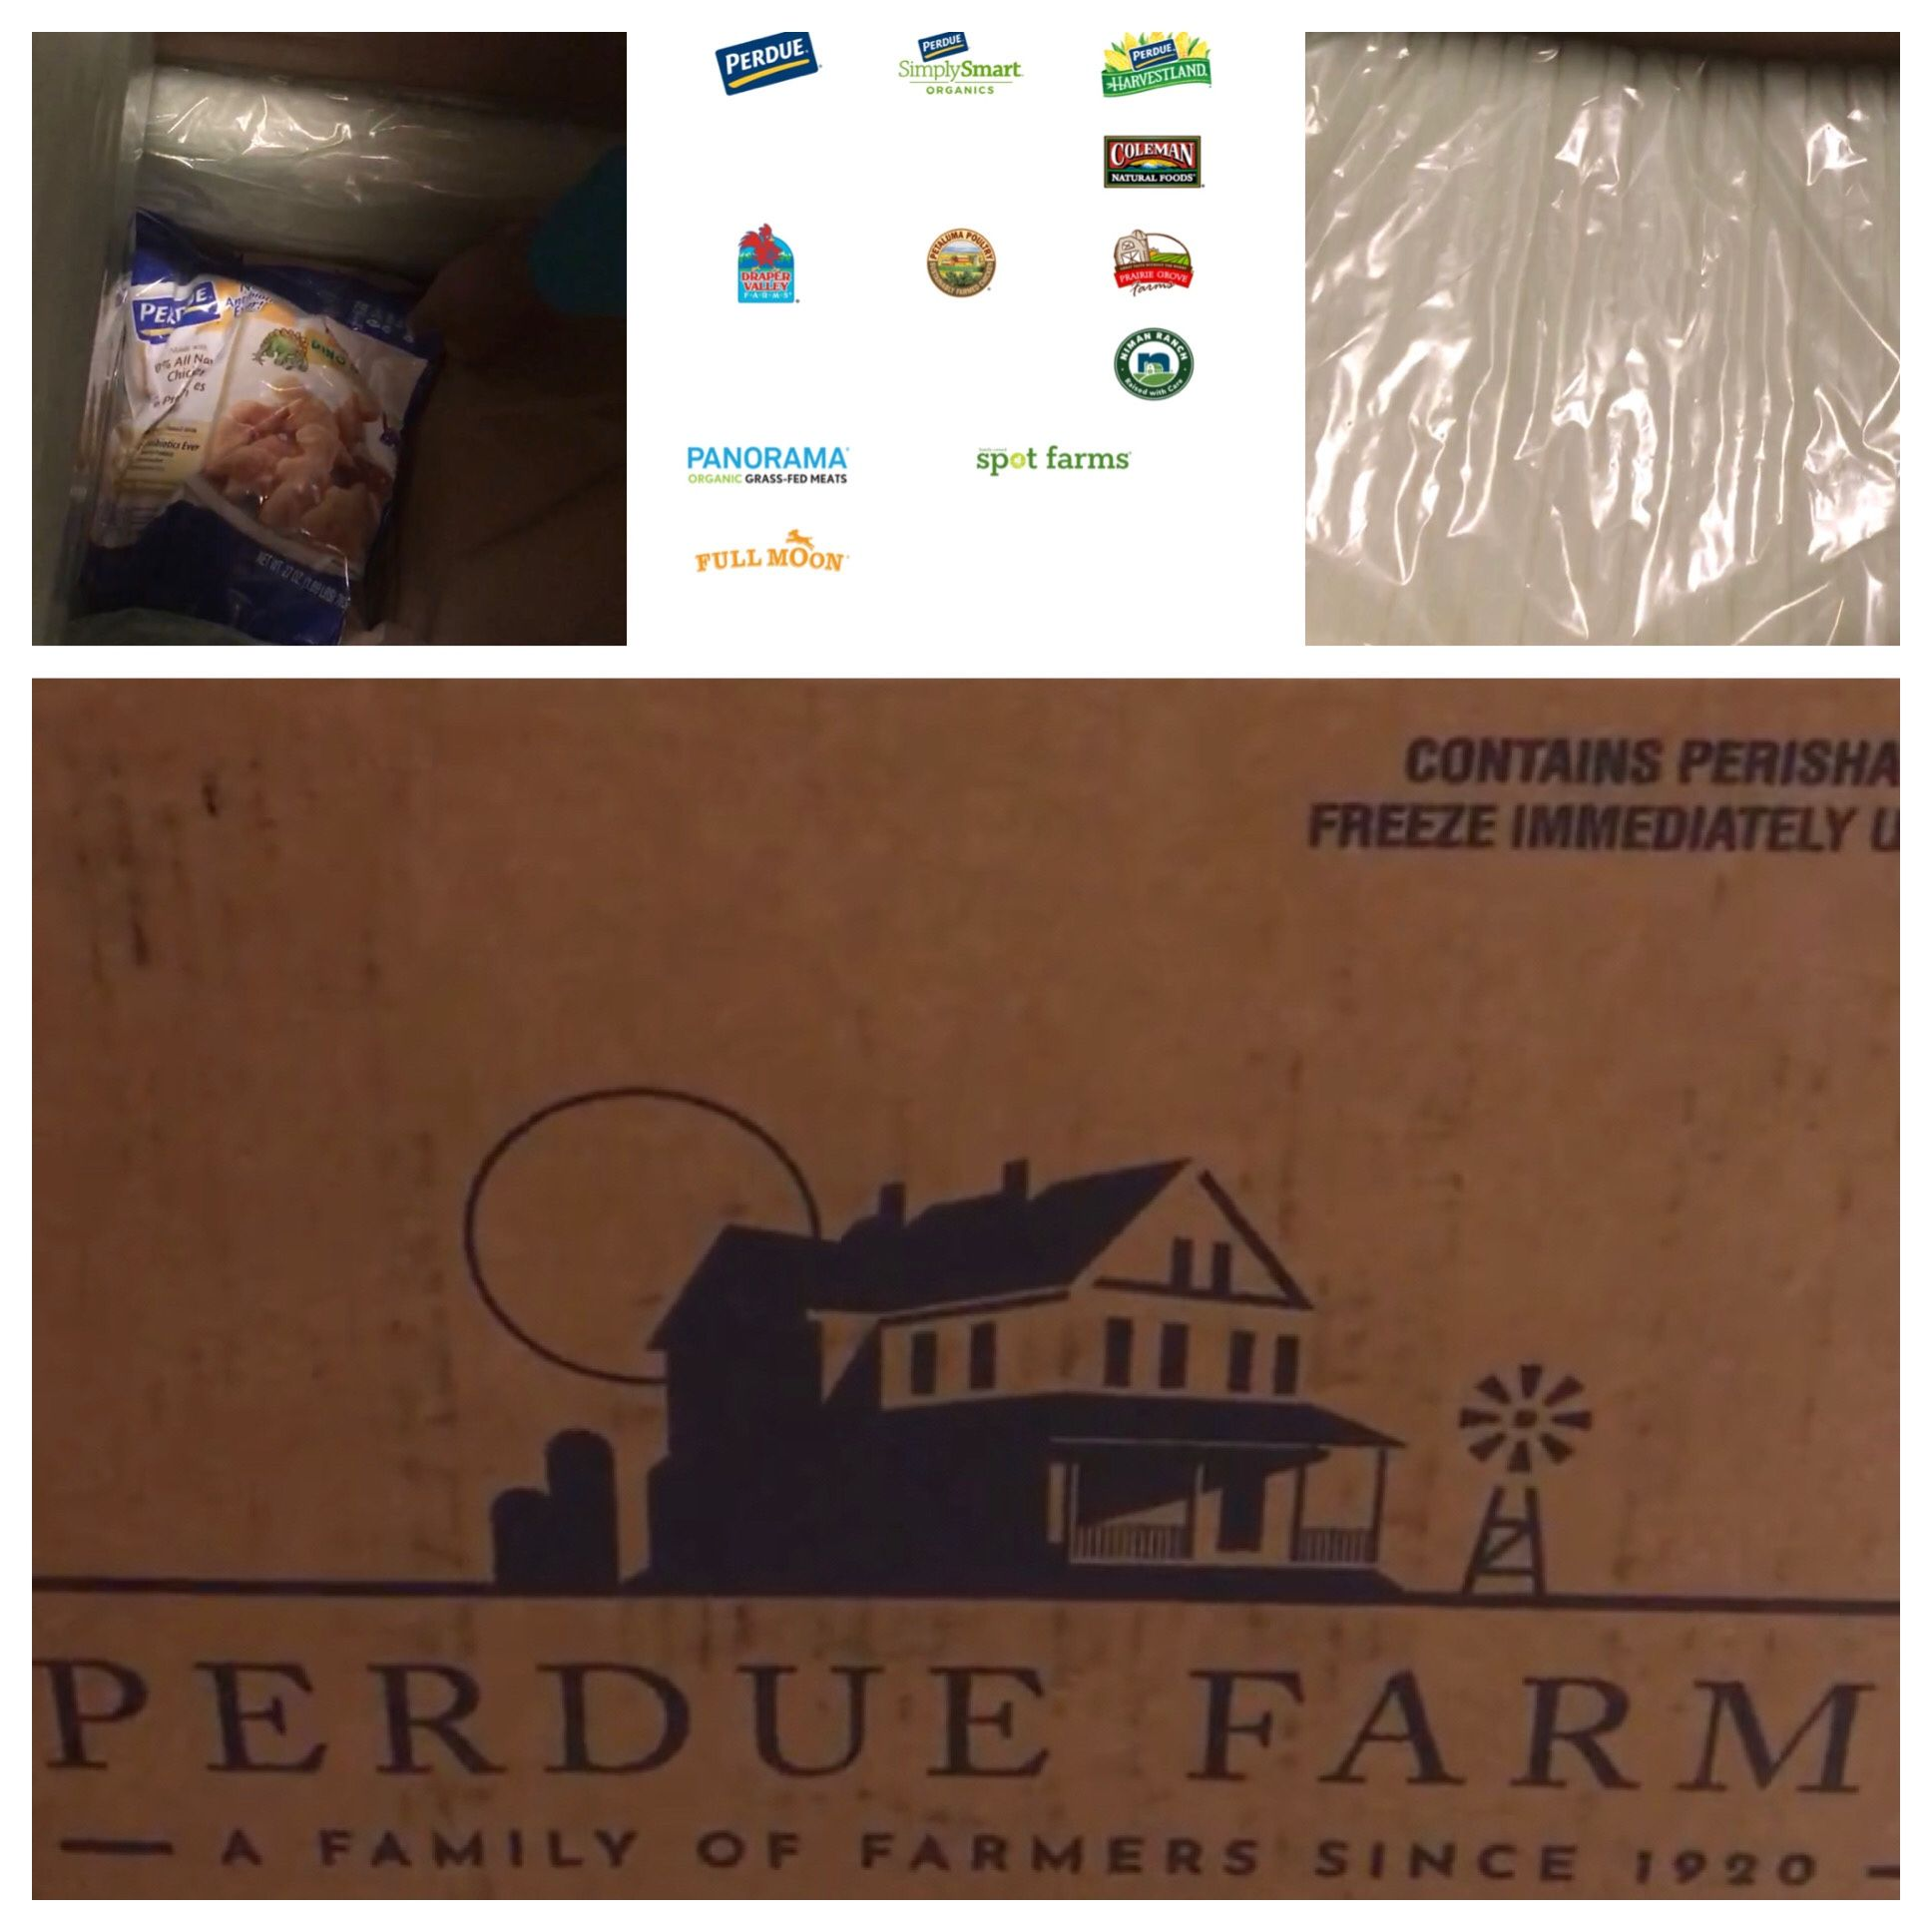 Perdue Farms Doing Great Things With New Direct To Consumer Website @PerdueChicken @PerdueFarms #PerdueFarms #AD #PerdueFarmsFarmToHome #PerdueFarms_Partner #FamilyFarmers #ThankAFarmer #RaisedWithCare